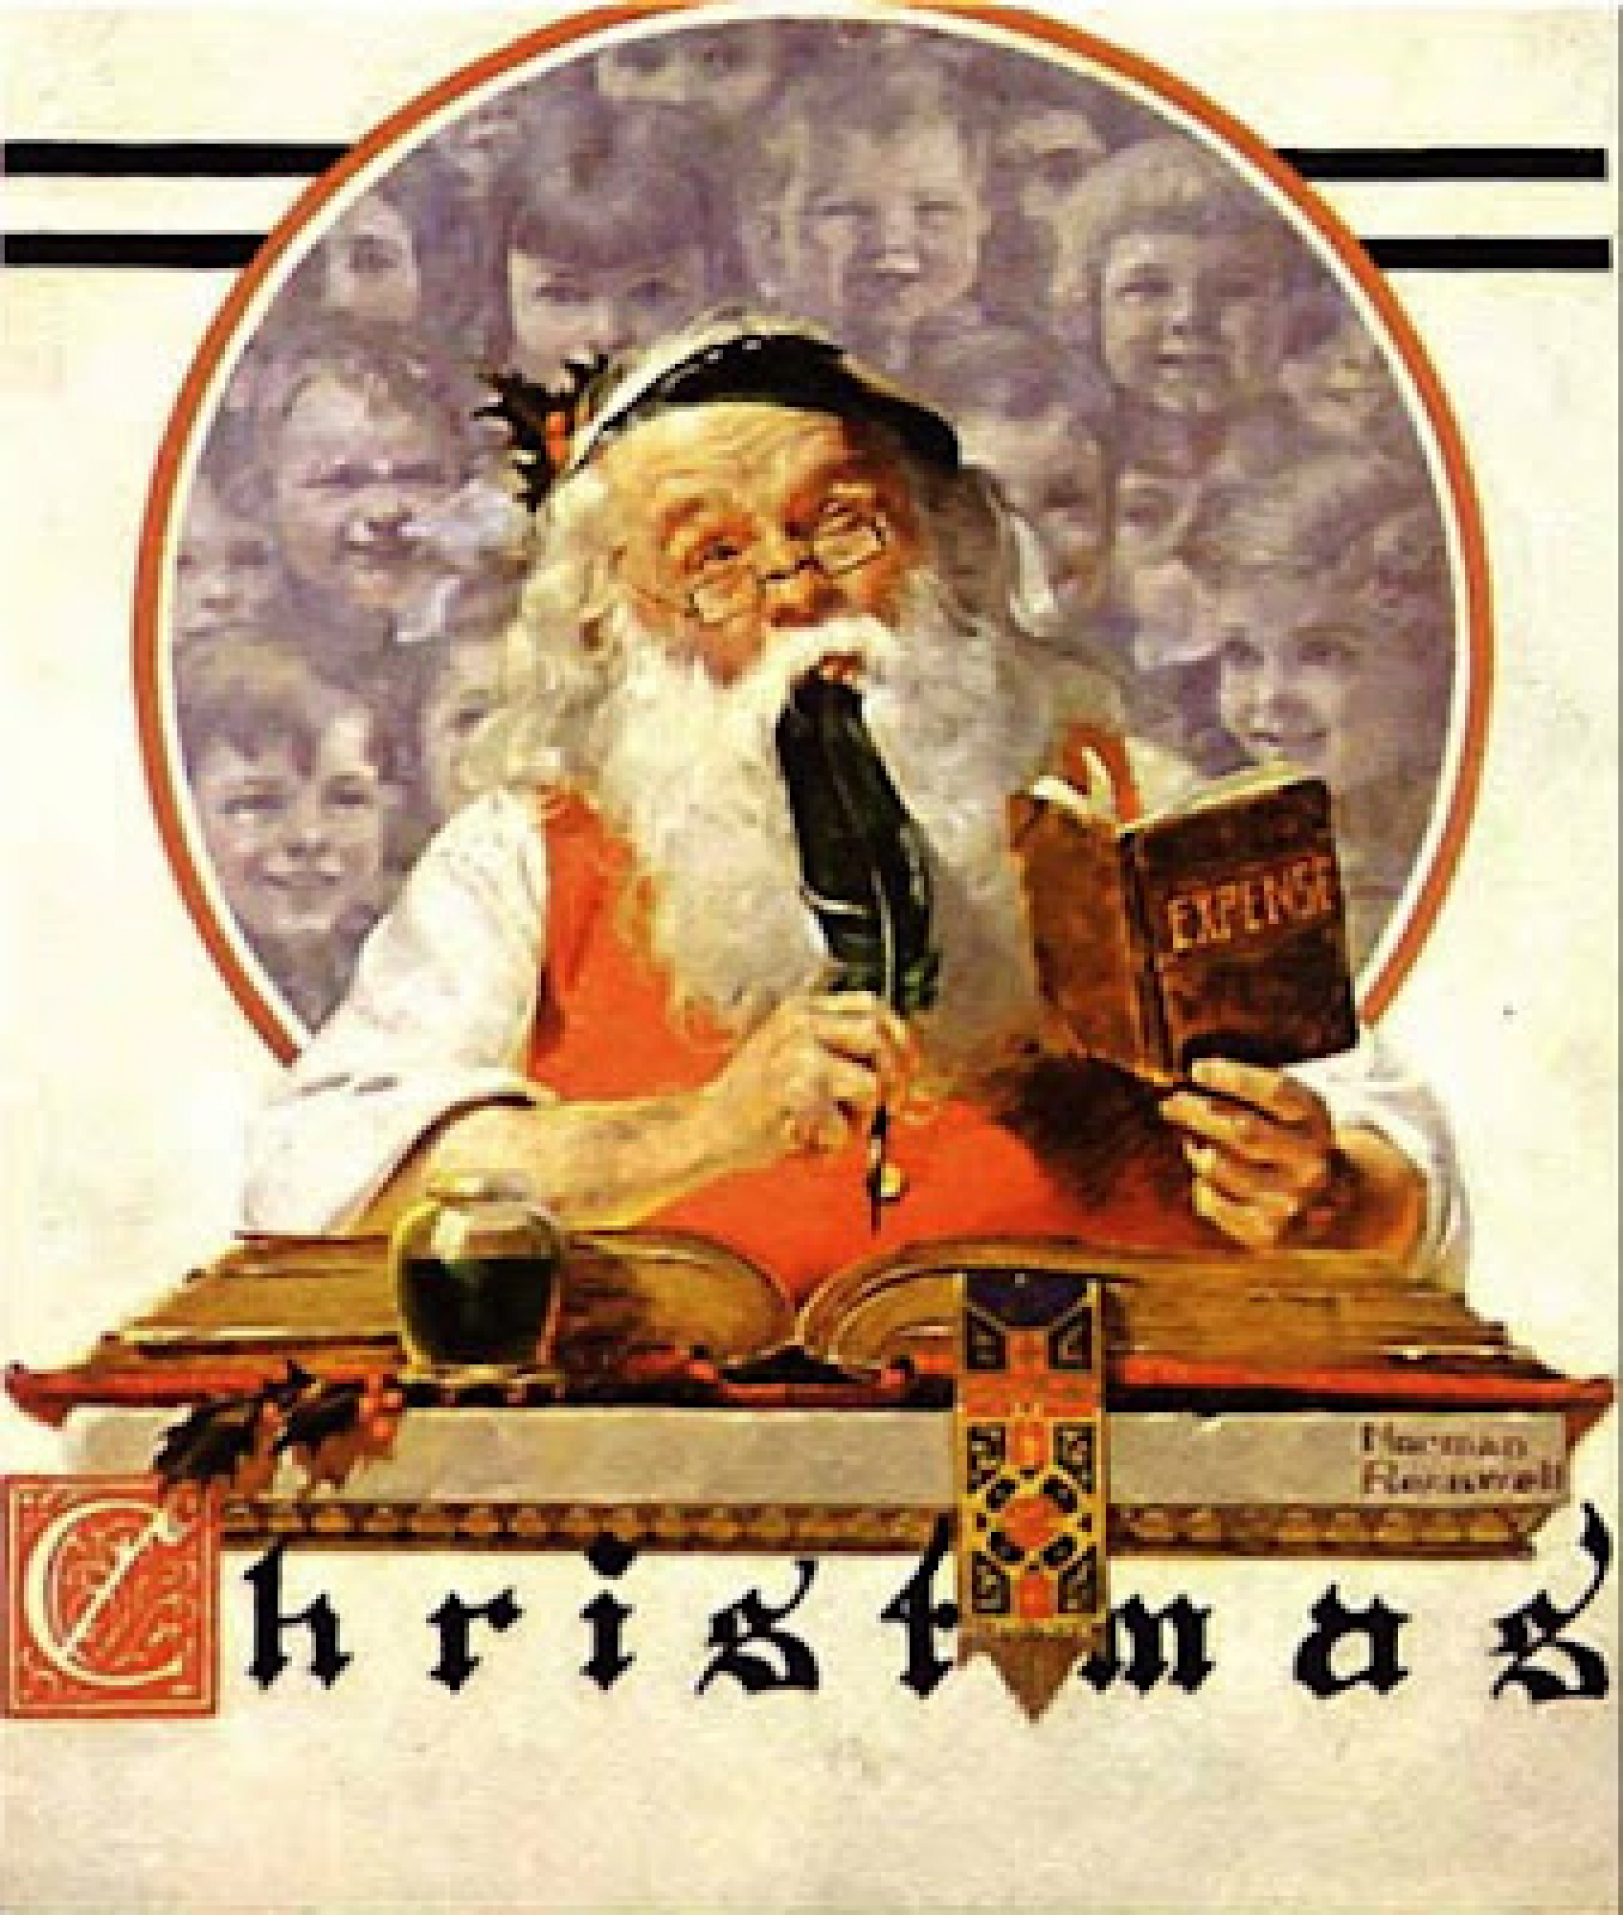 Norman rockwell christmas art